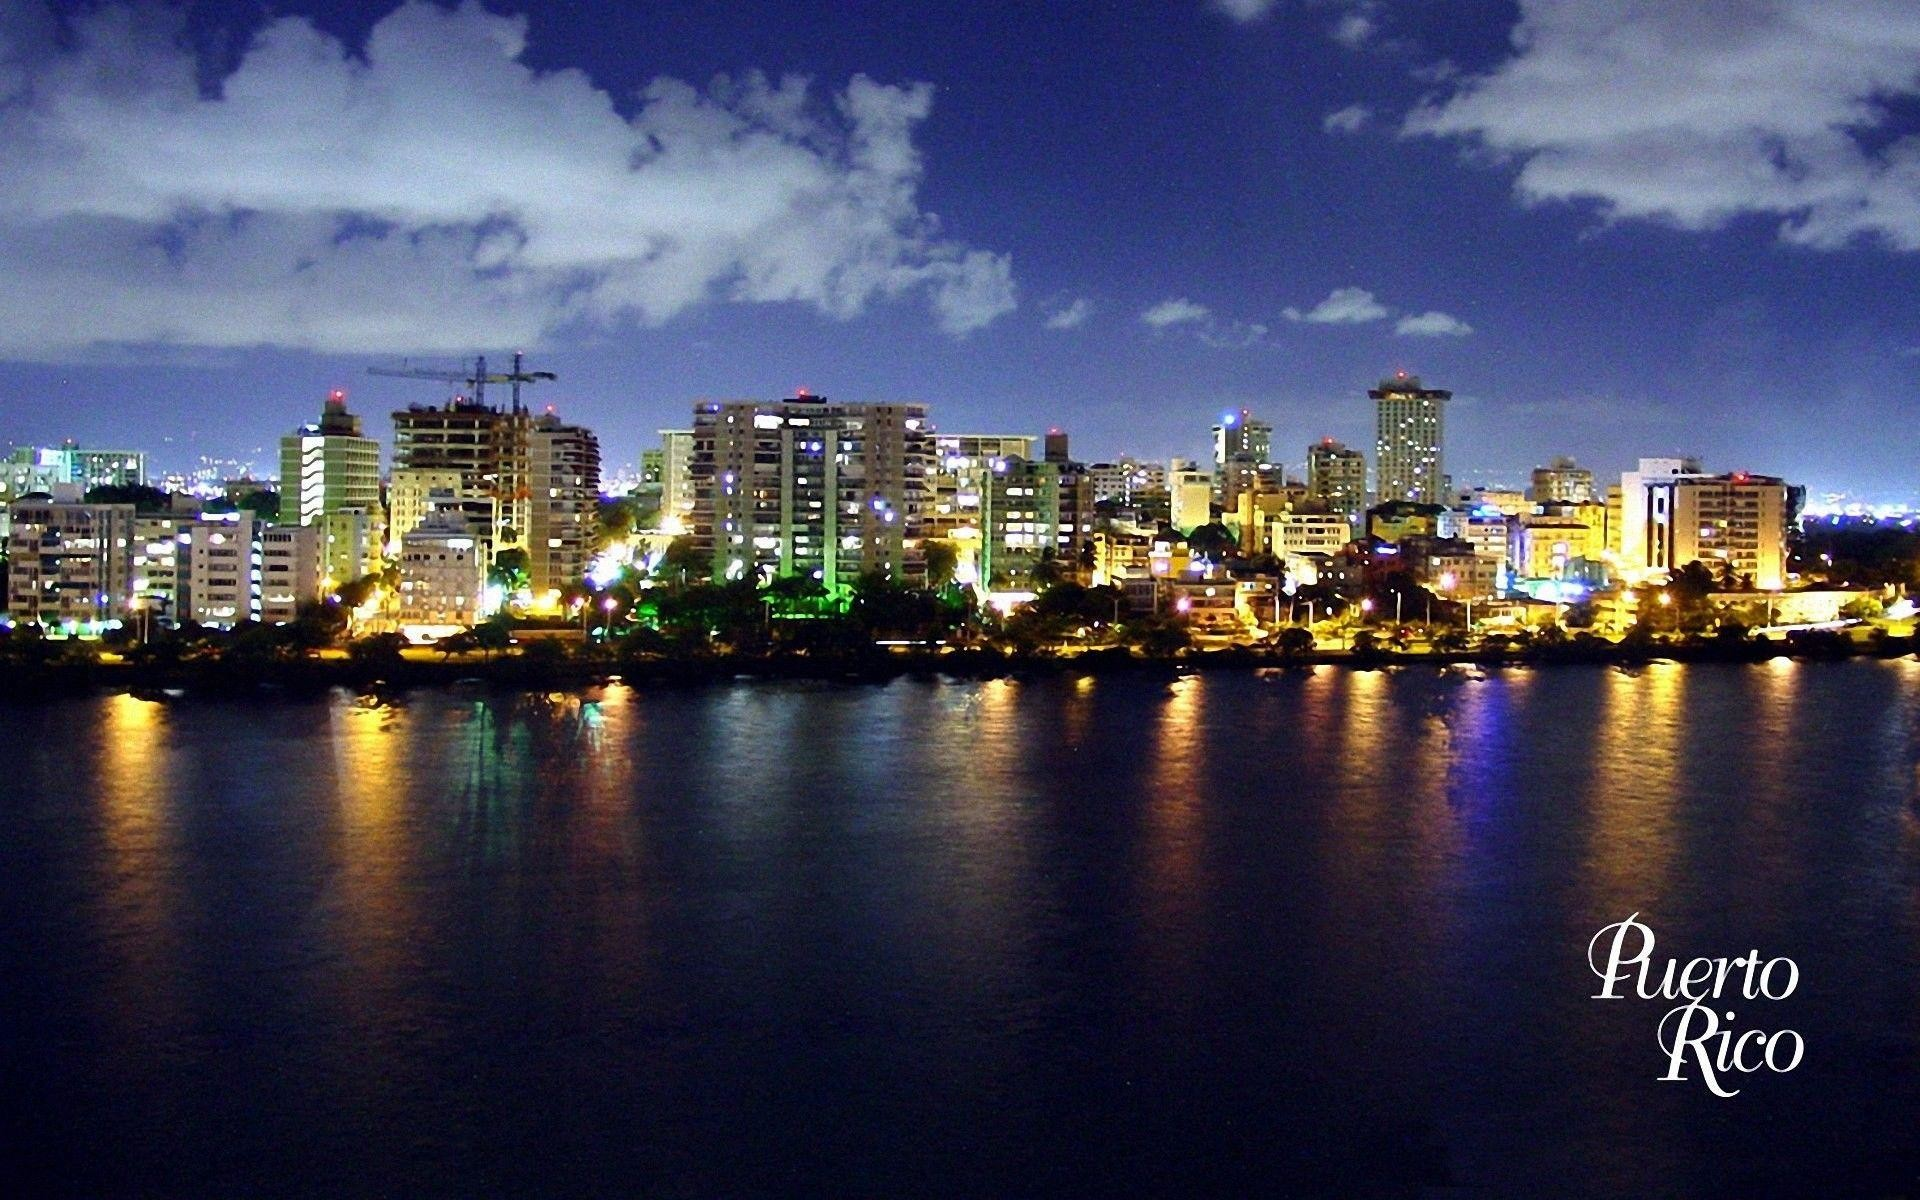 Puerto Rico Wallpapers, Wallpapers & Pictures Free .